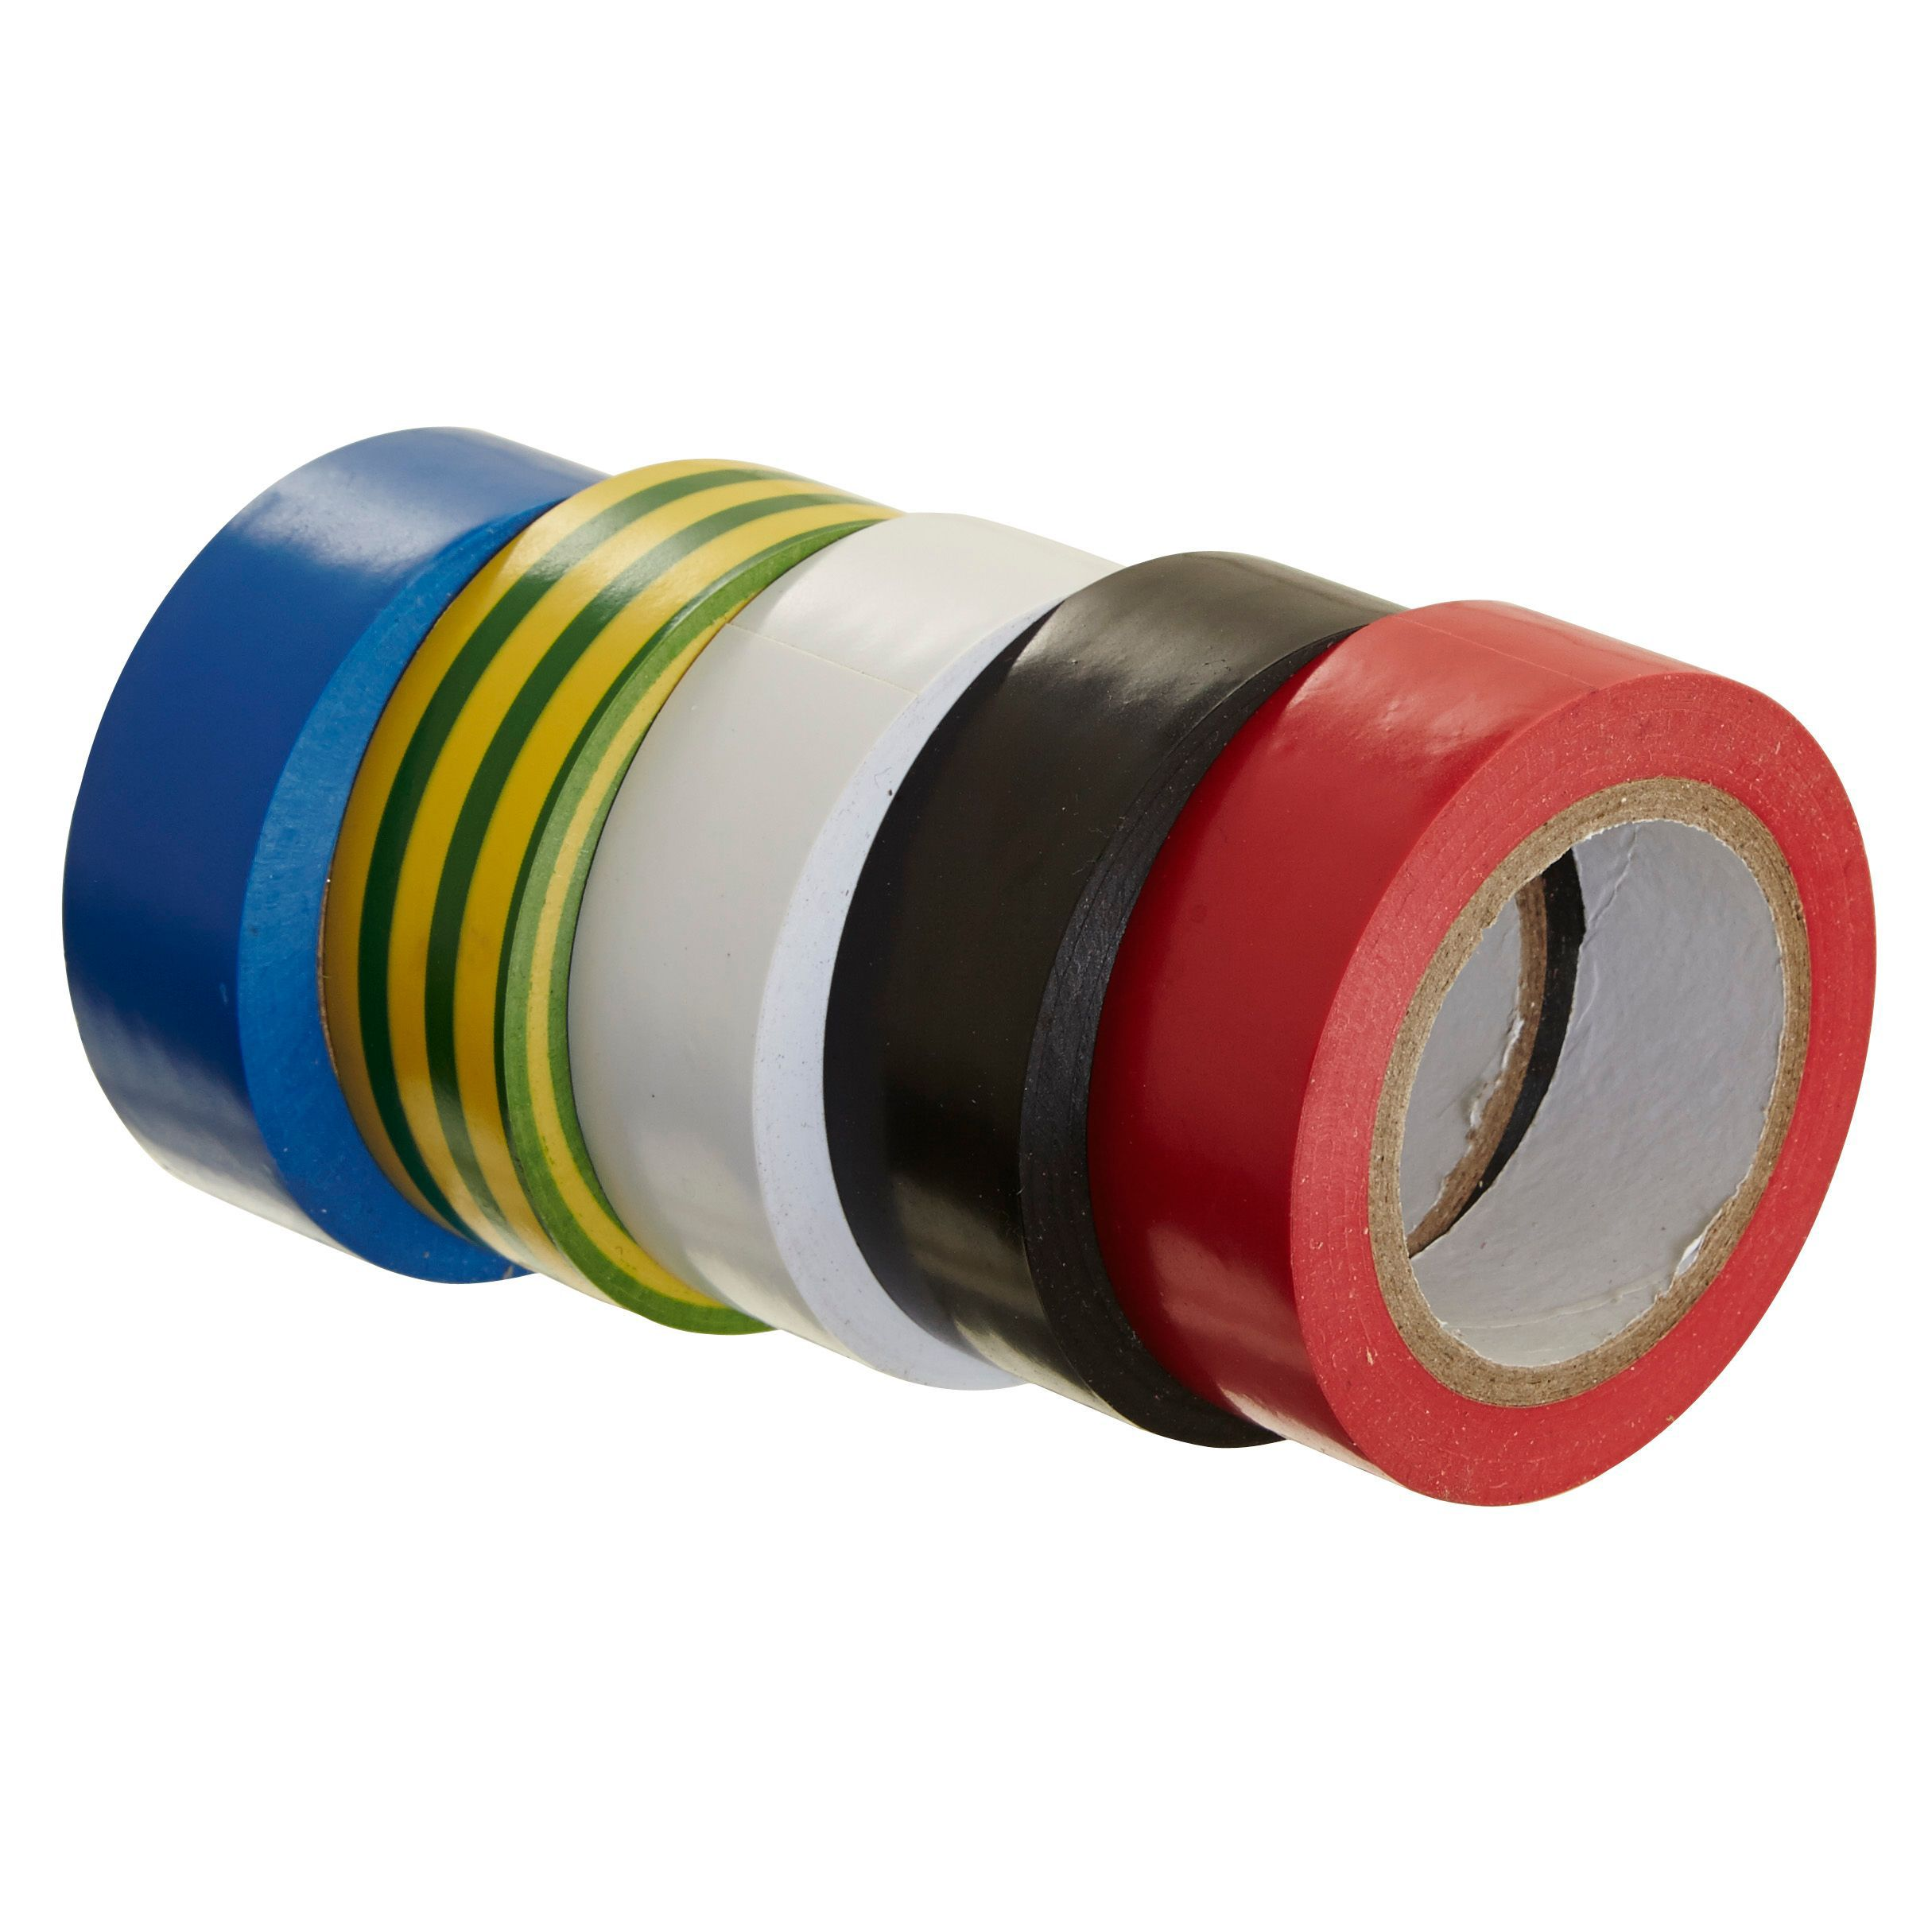 b q multicolour insulation tape l 10m w 19mm pack of 5. Black Bedroom Furniture Sets. Home Design Ideas